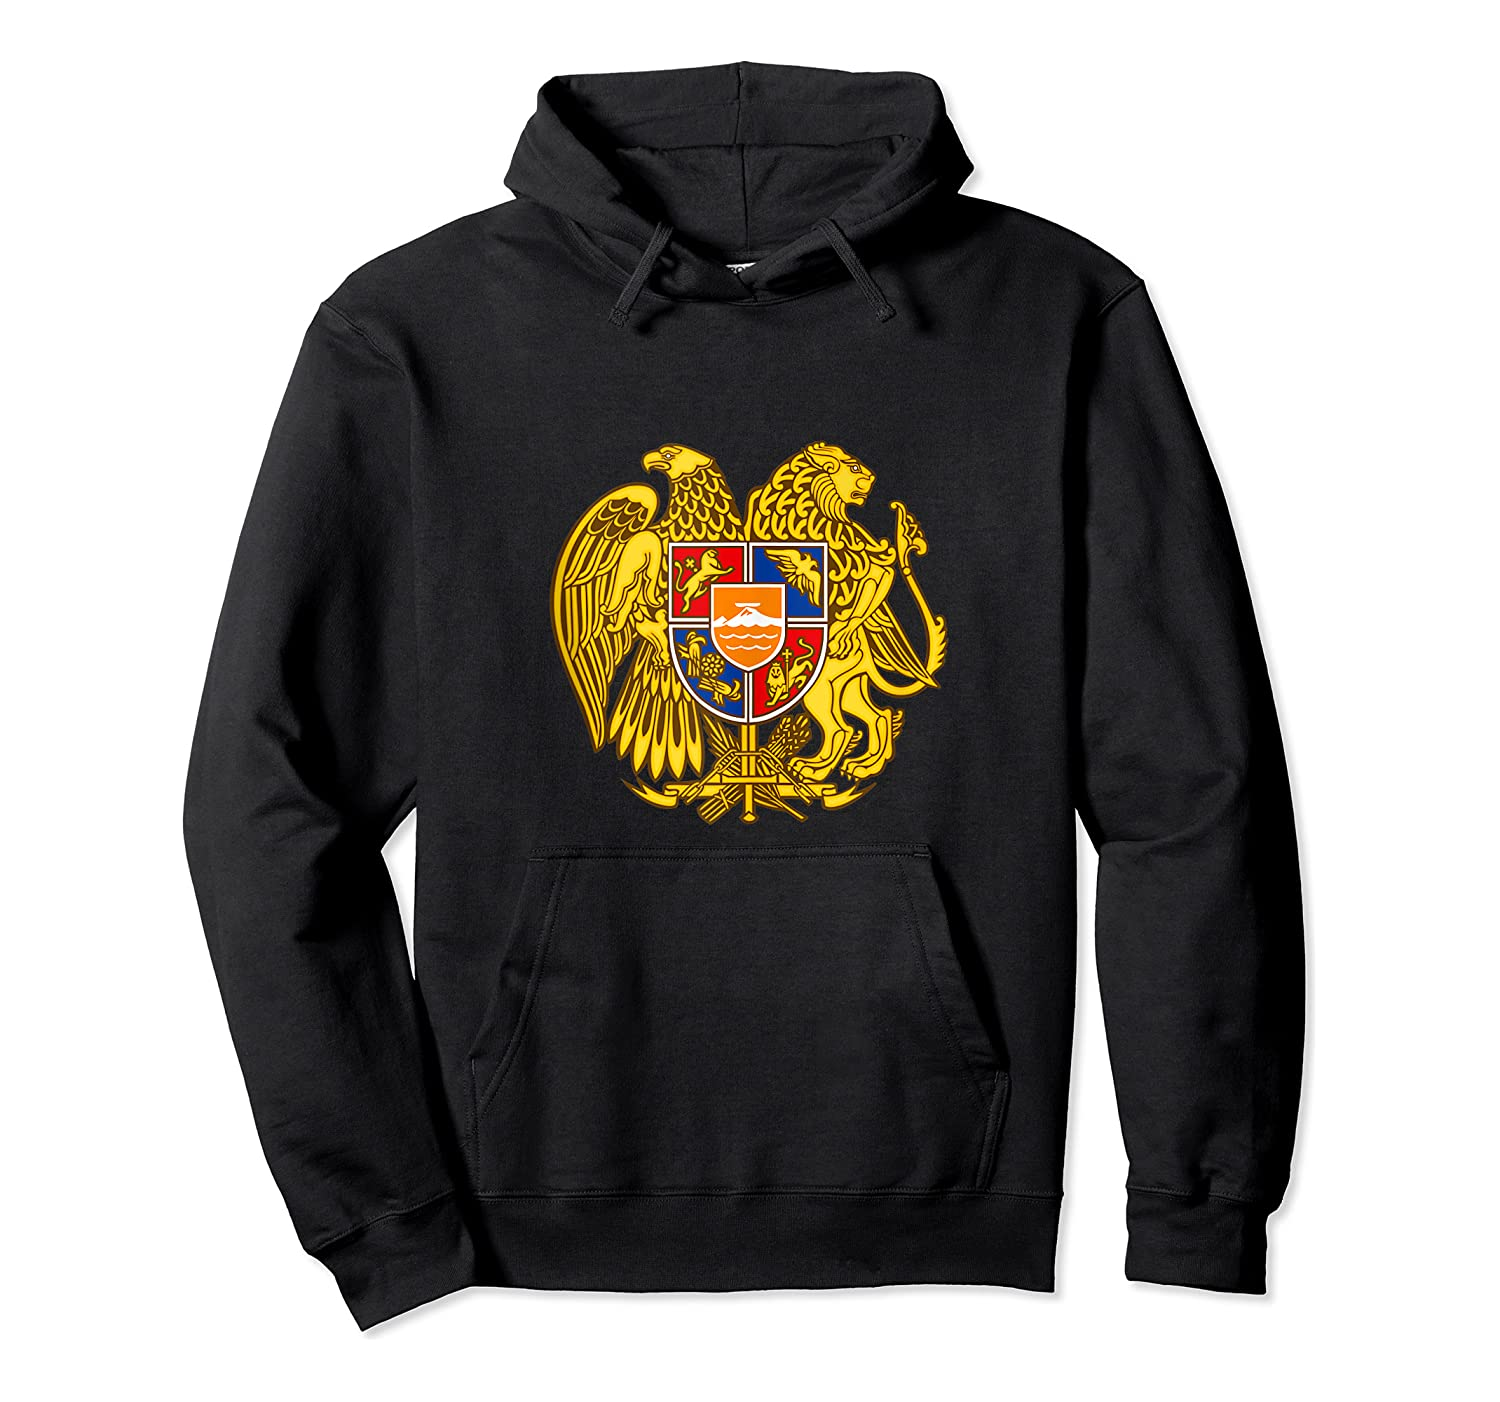 Aria Coat Of Arms Emblem On Shirts For & Tank Top Unisex Pullover Hoodie